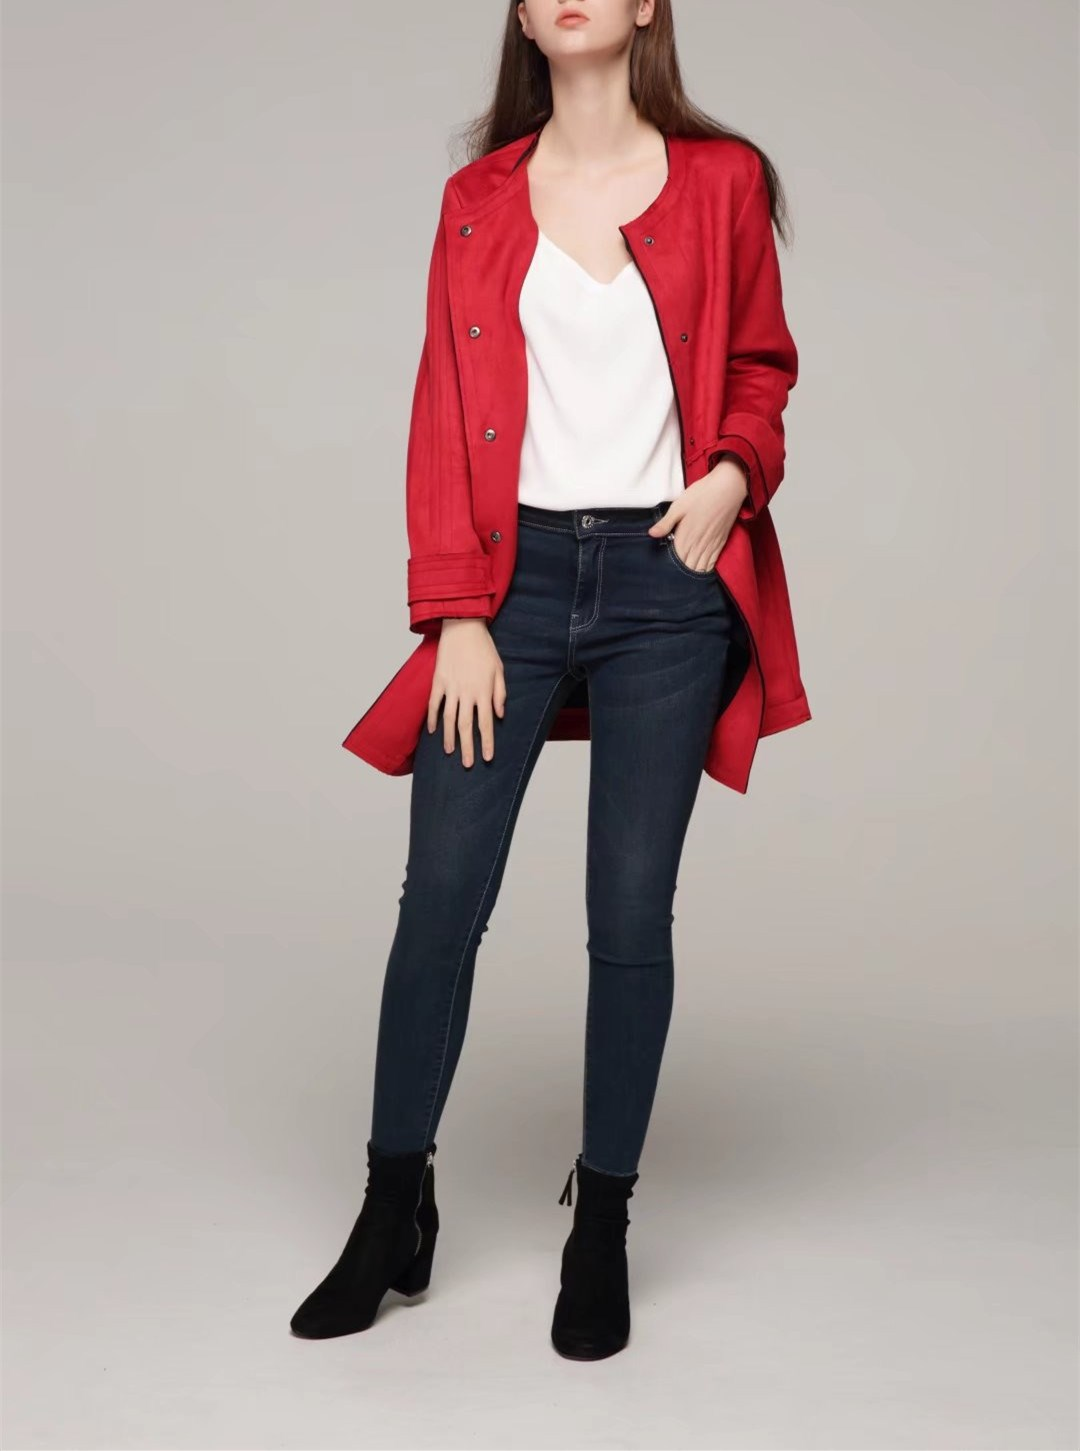 Fashion 2018 New Women Autumn Winter   Suede   Faux   Leather   Jackets Elegant Patchwork Long Coat Lady Red Matte Bodycon Outwear